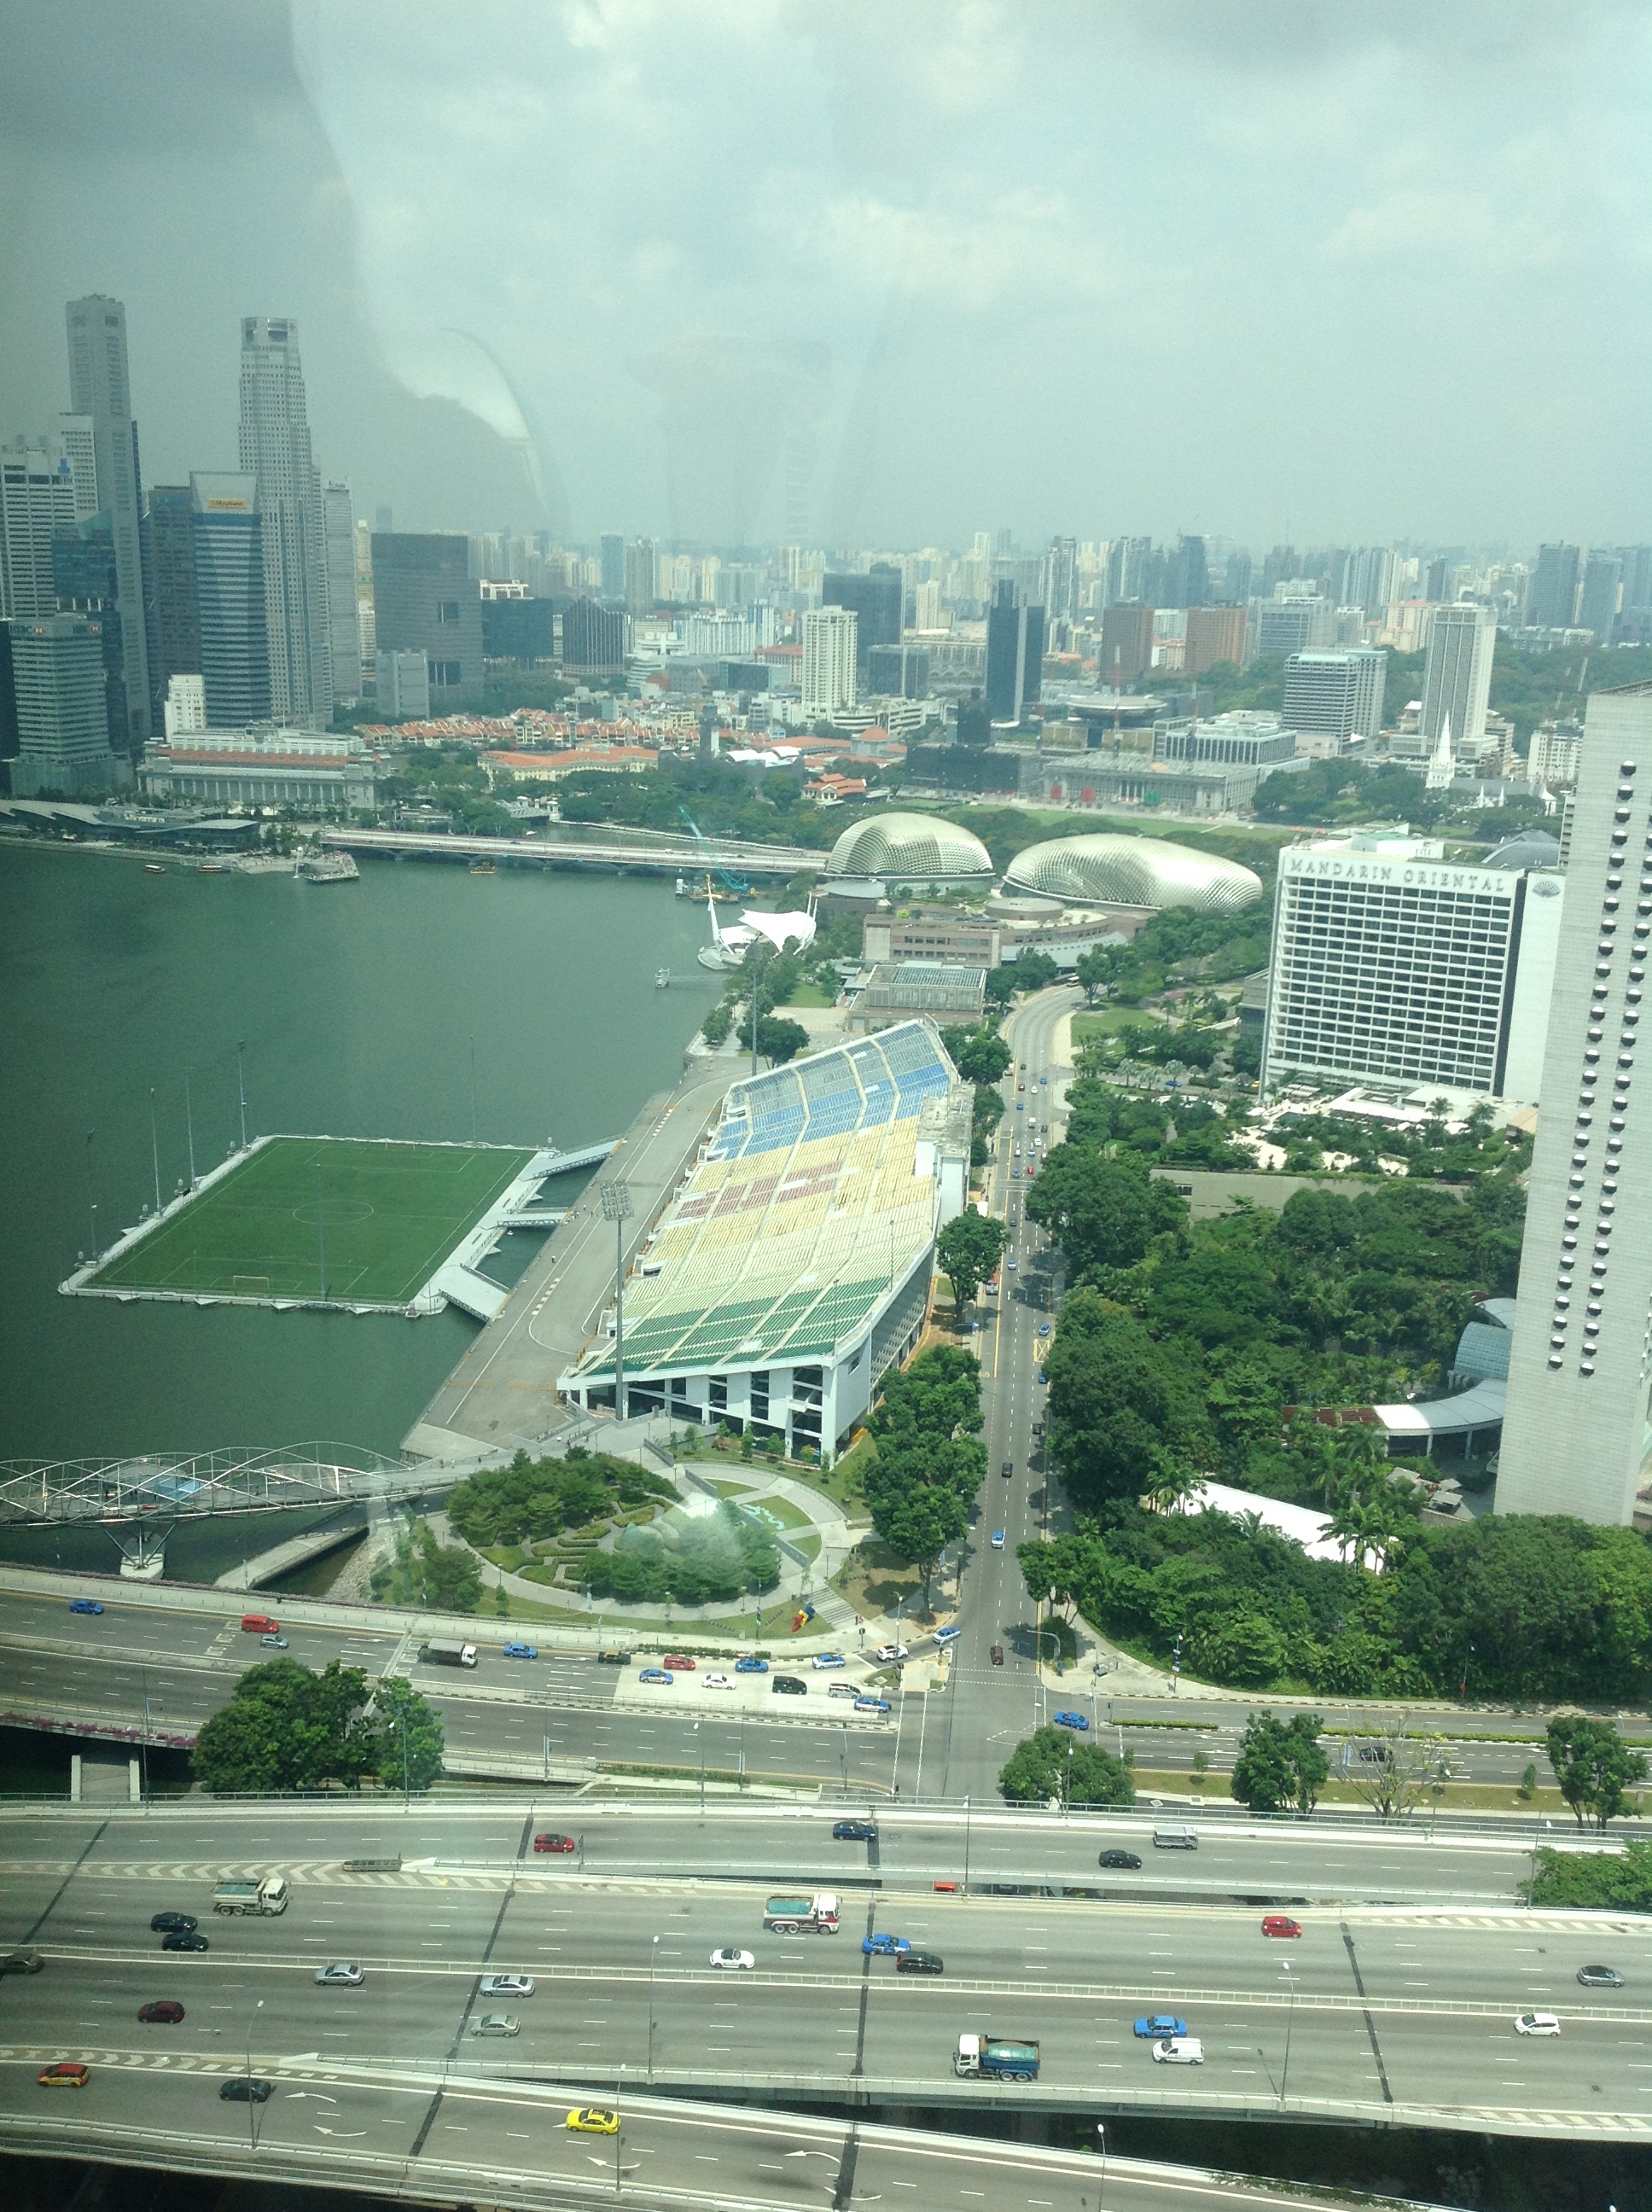 A Trip To Singapore Cubical Earth Luge Ampamp Skyline 2x